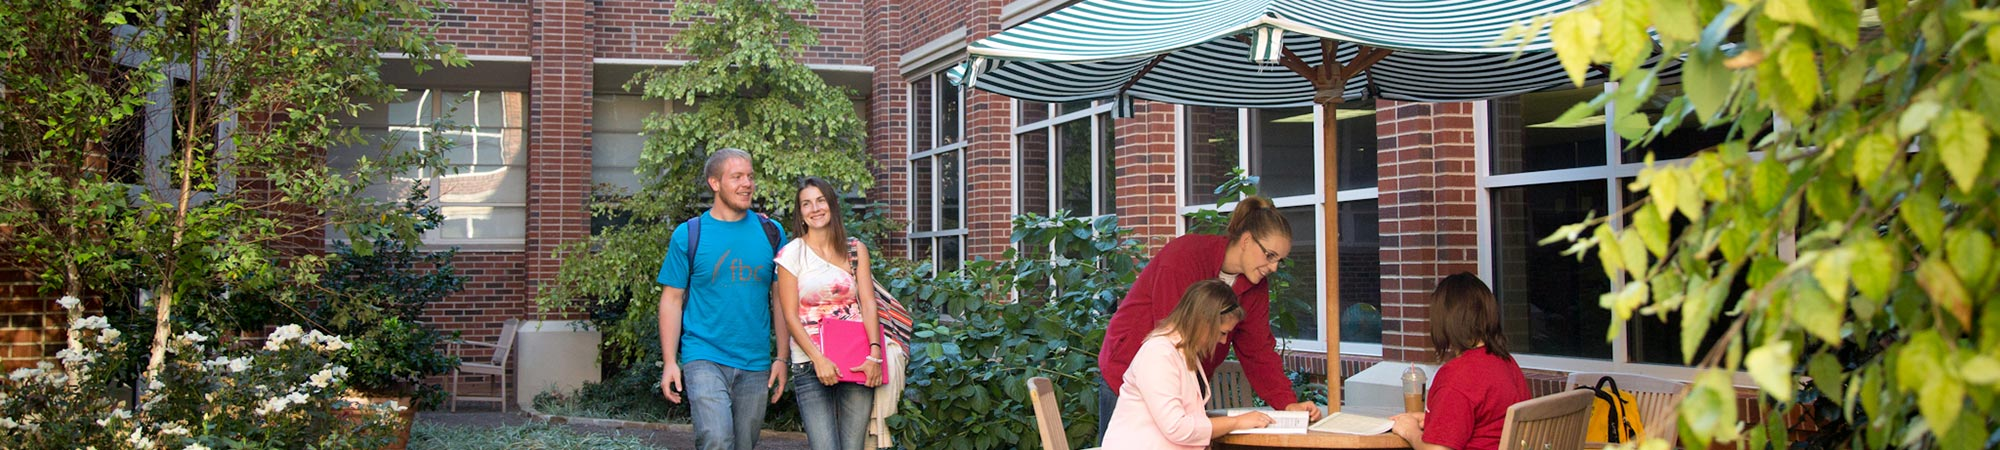 Students enjoying Collings courtyard